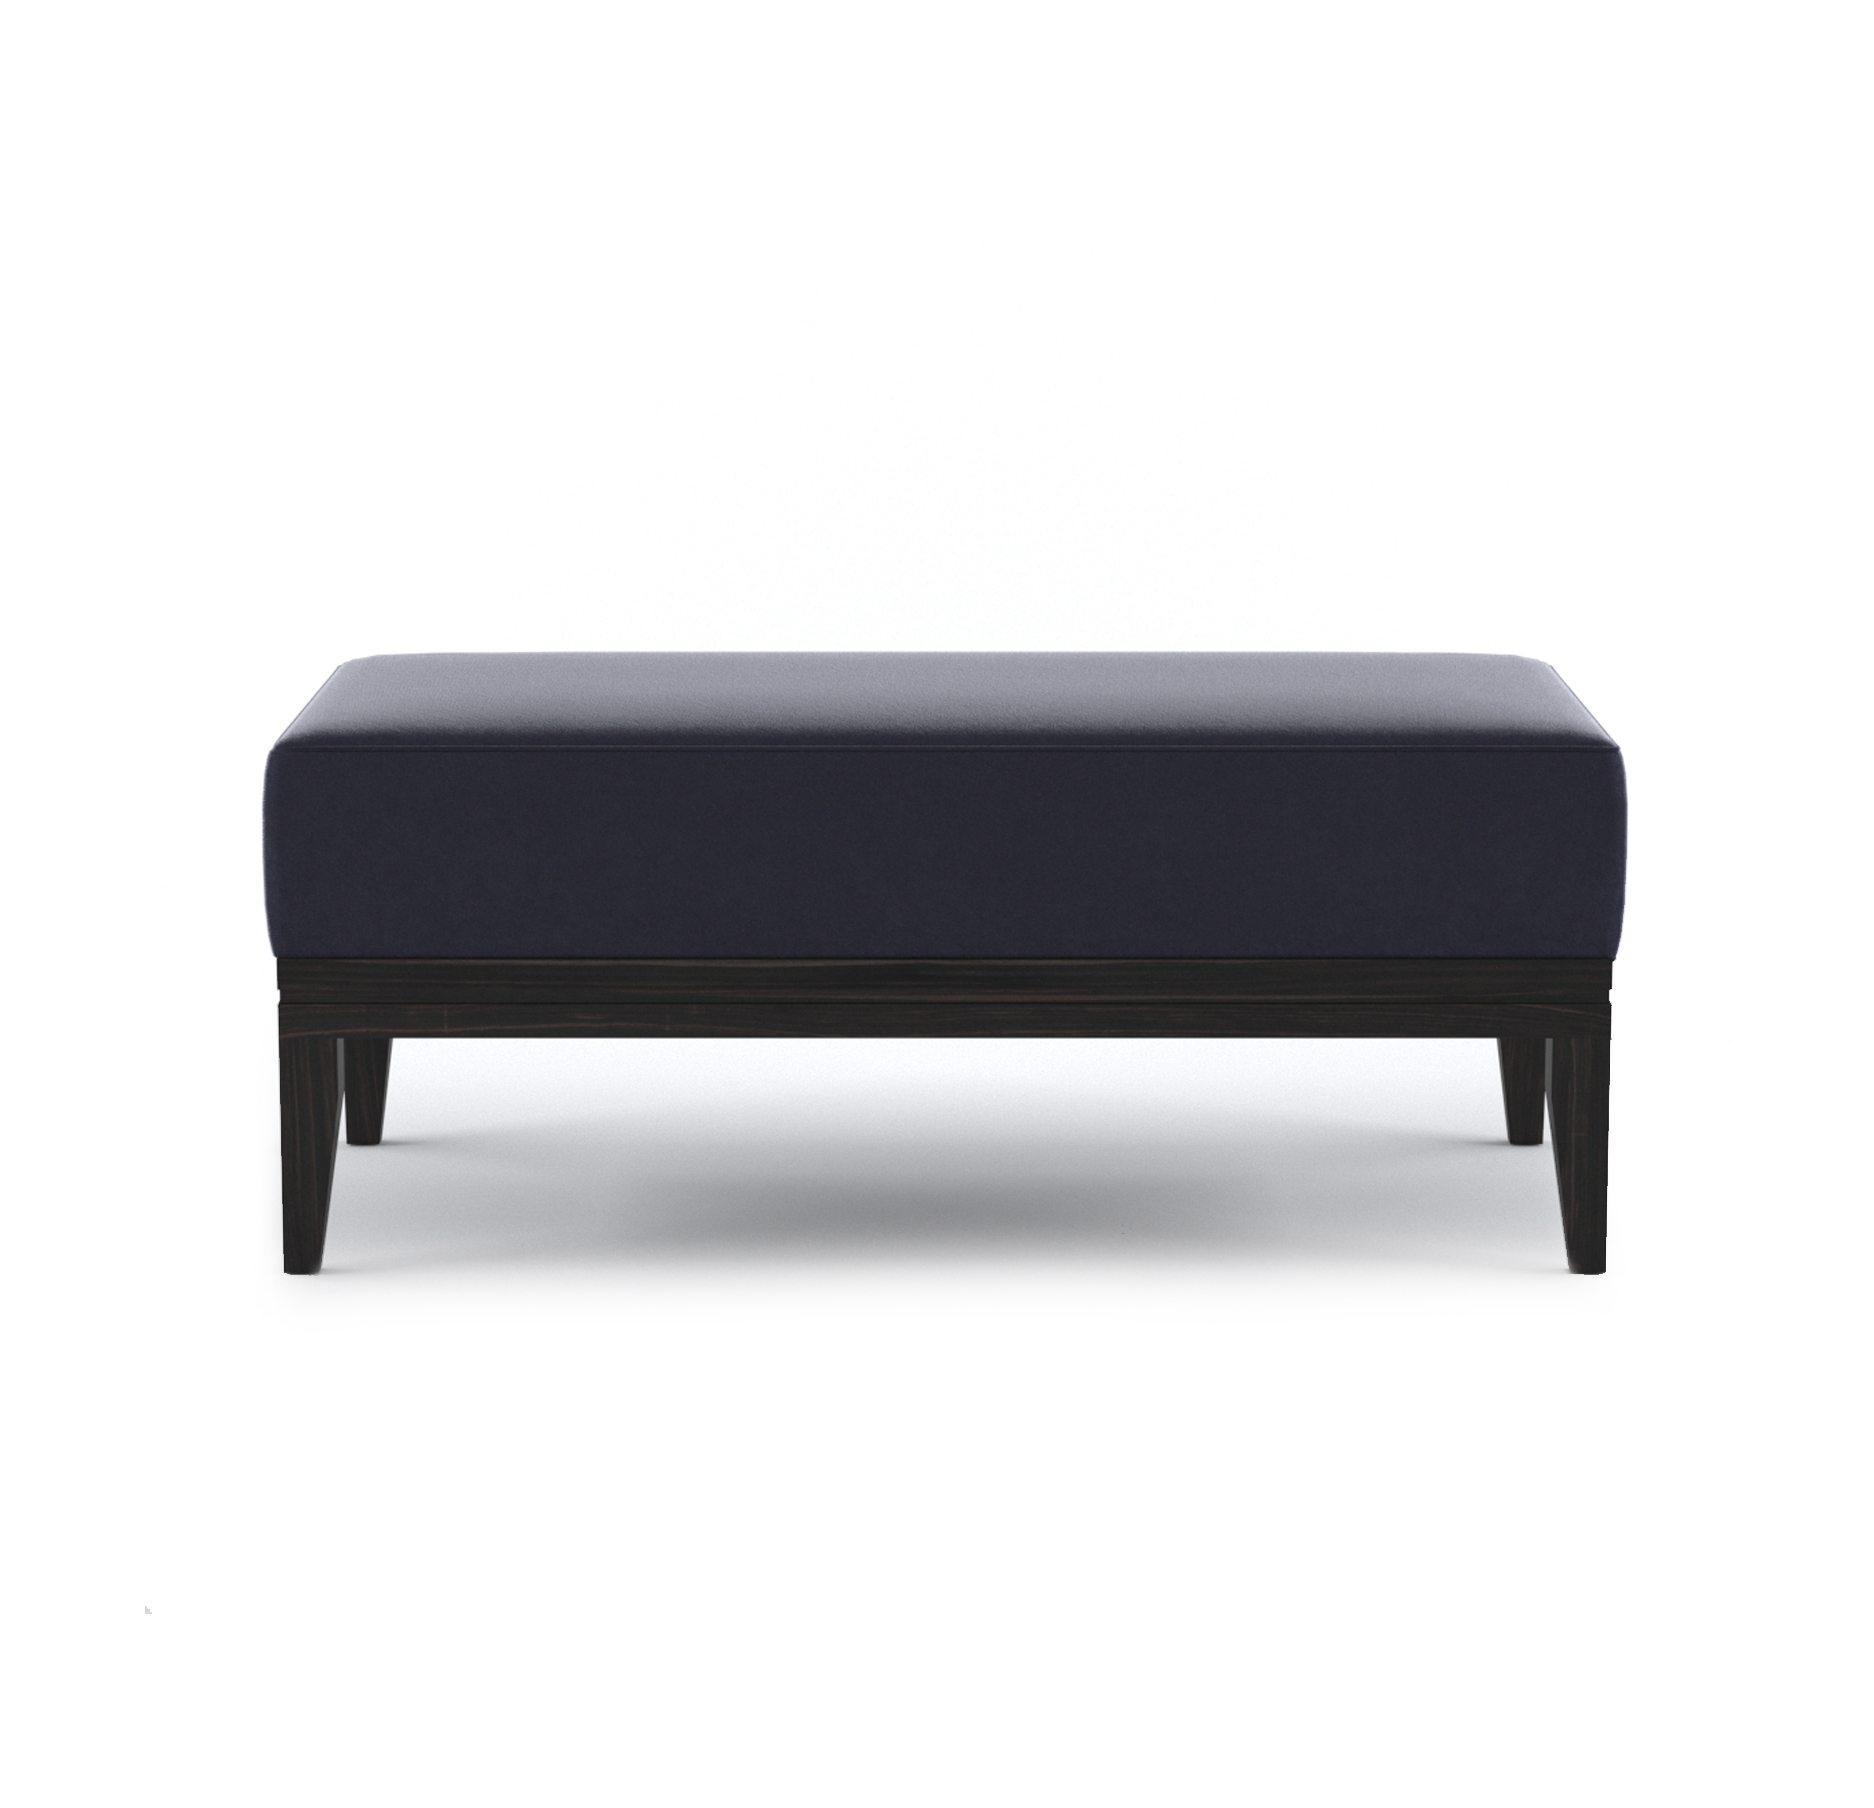 Dumas Bench 02 by Bonham & Bonham 07